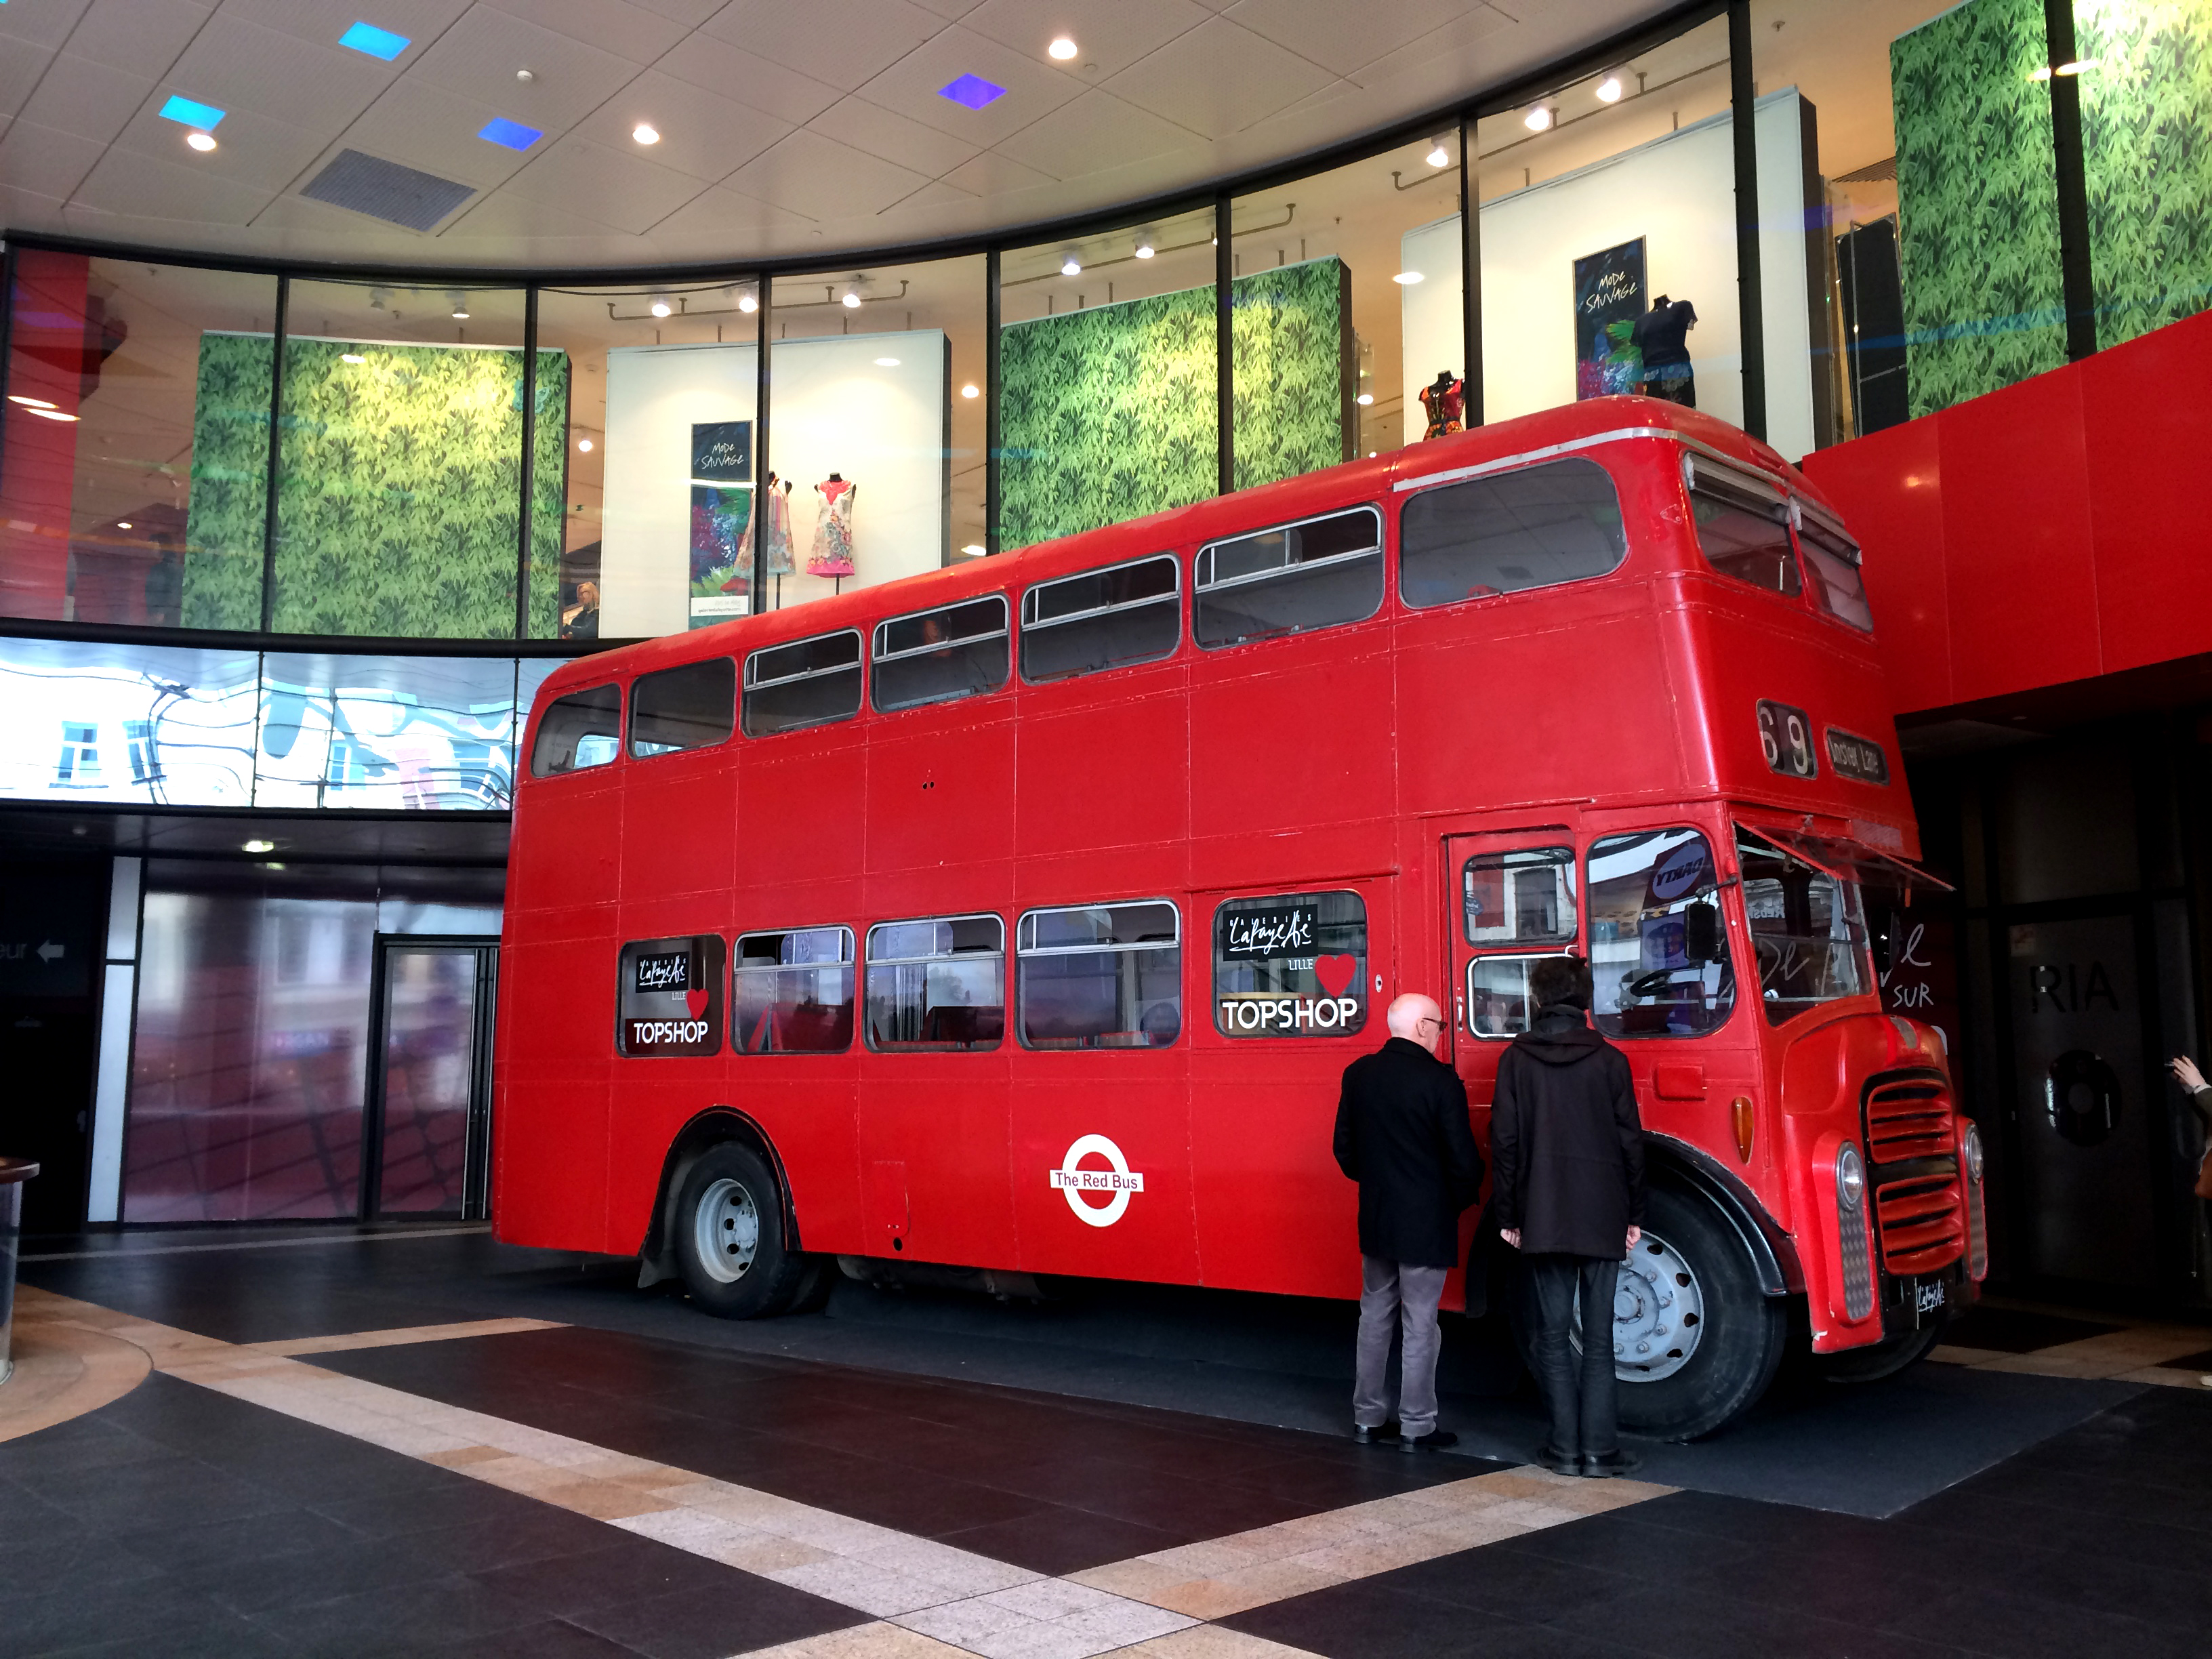 The Red Bus - Kate Moss - Topshop